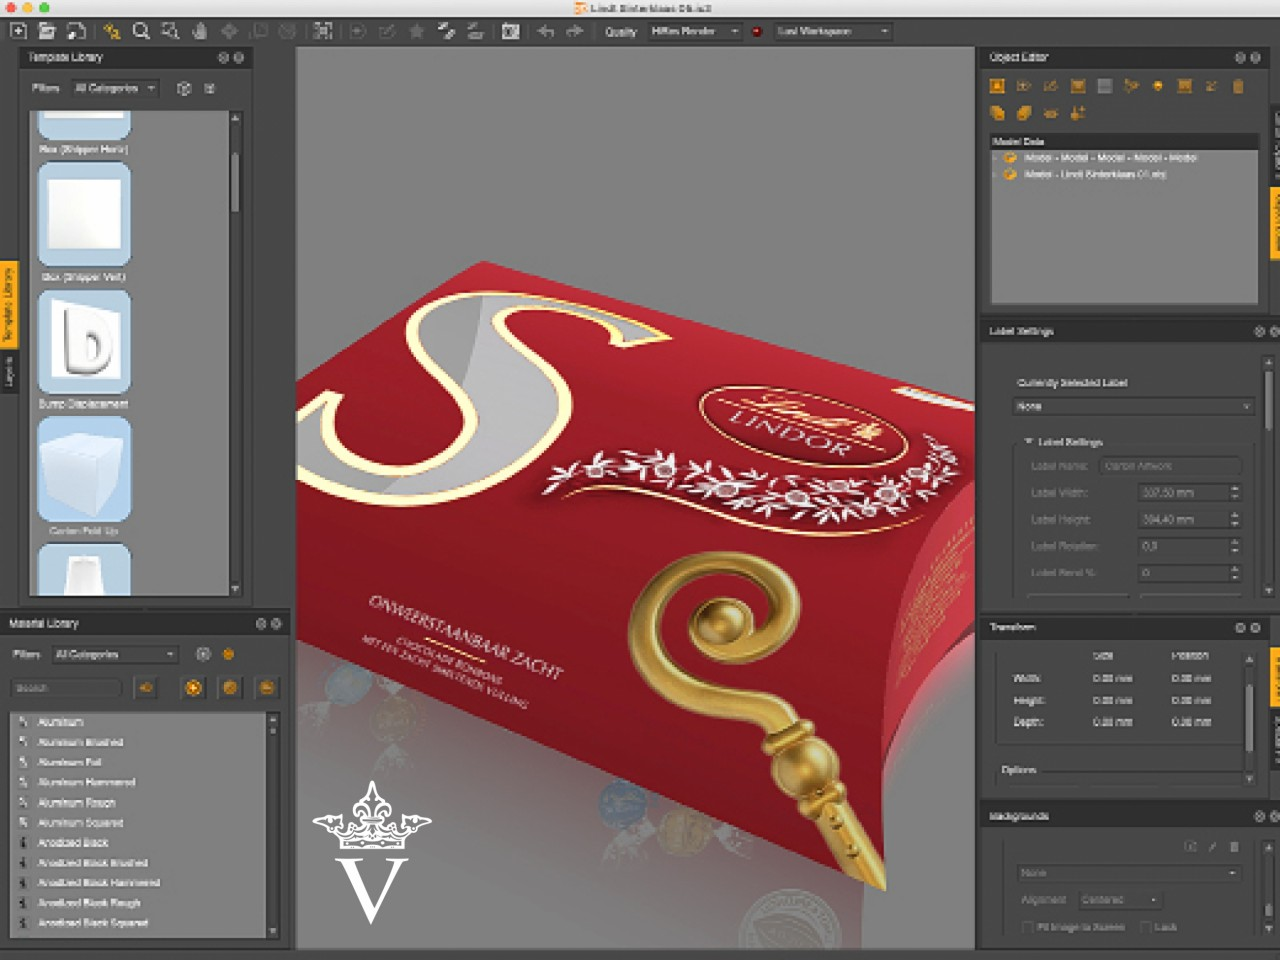 Lindt vouwkartonnage - 3D digitale mock-up in de maak